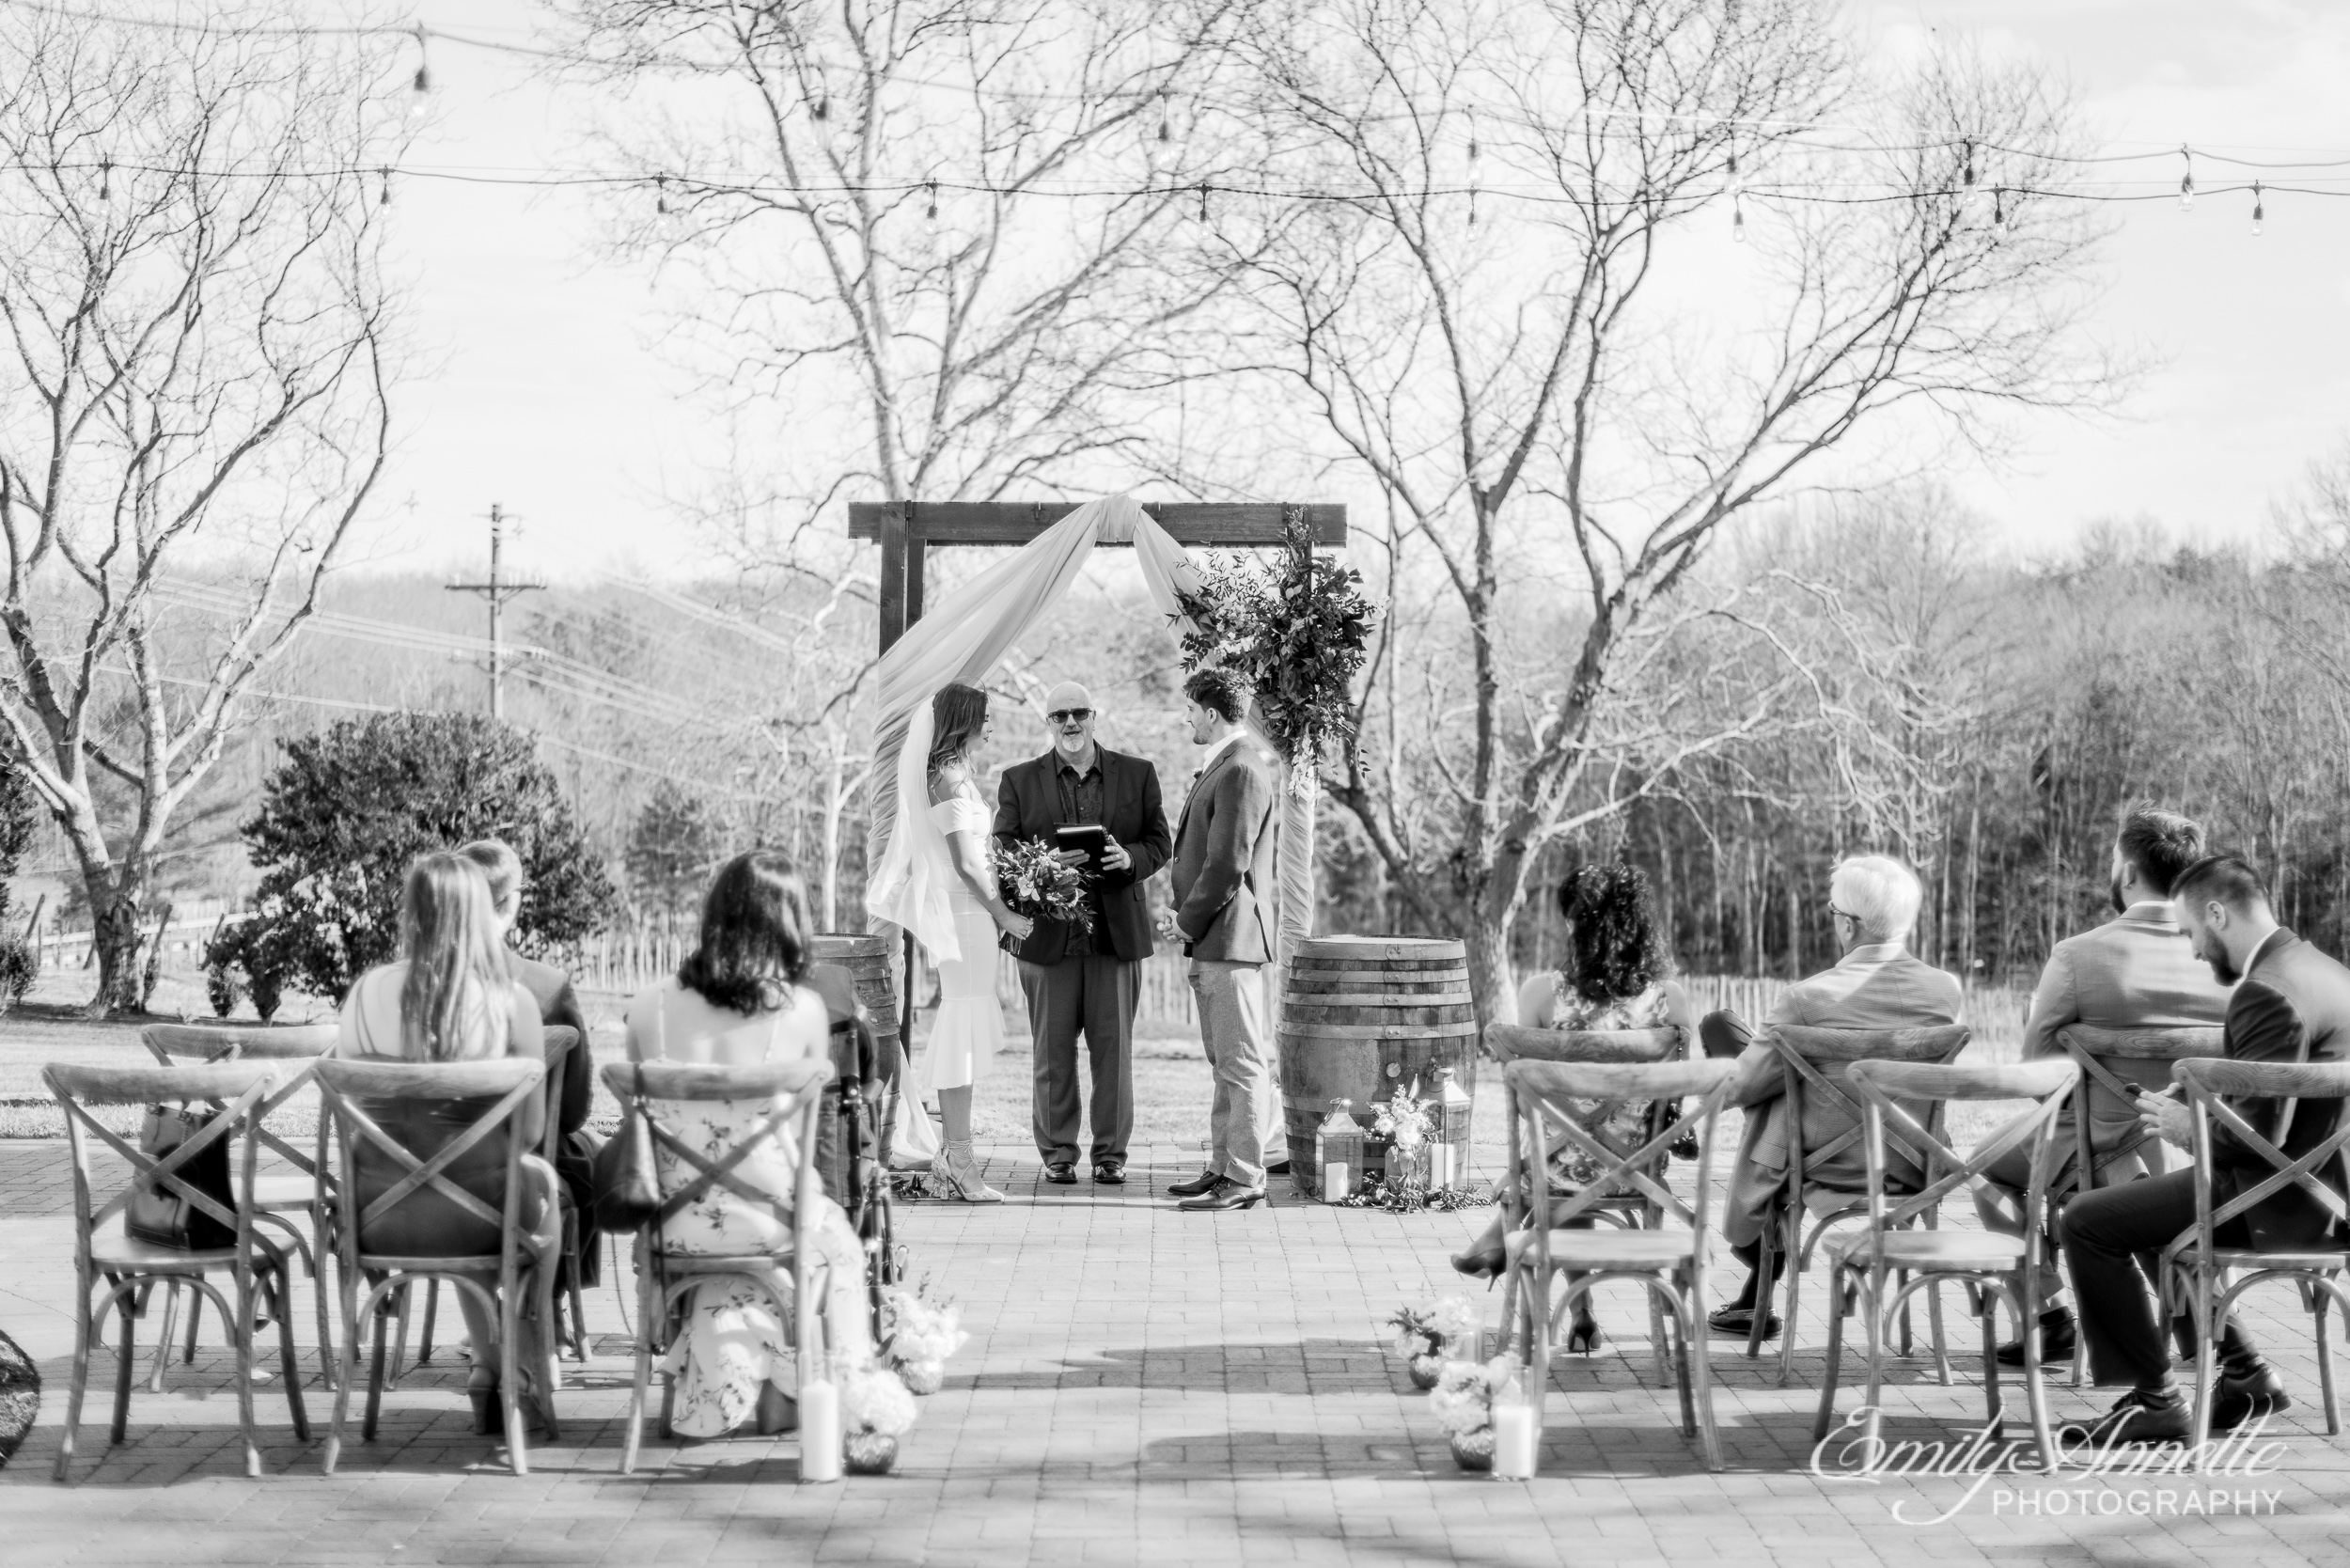 A wide view during an elopement wedding ceremony at Fleetwood Farm Winery in Leesburg, Virginia